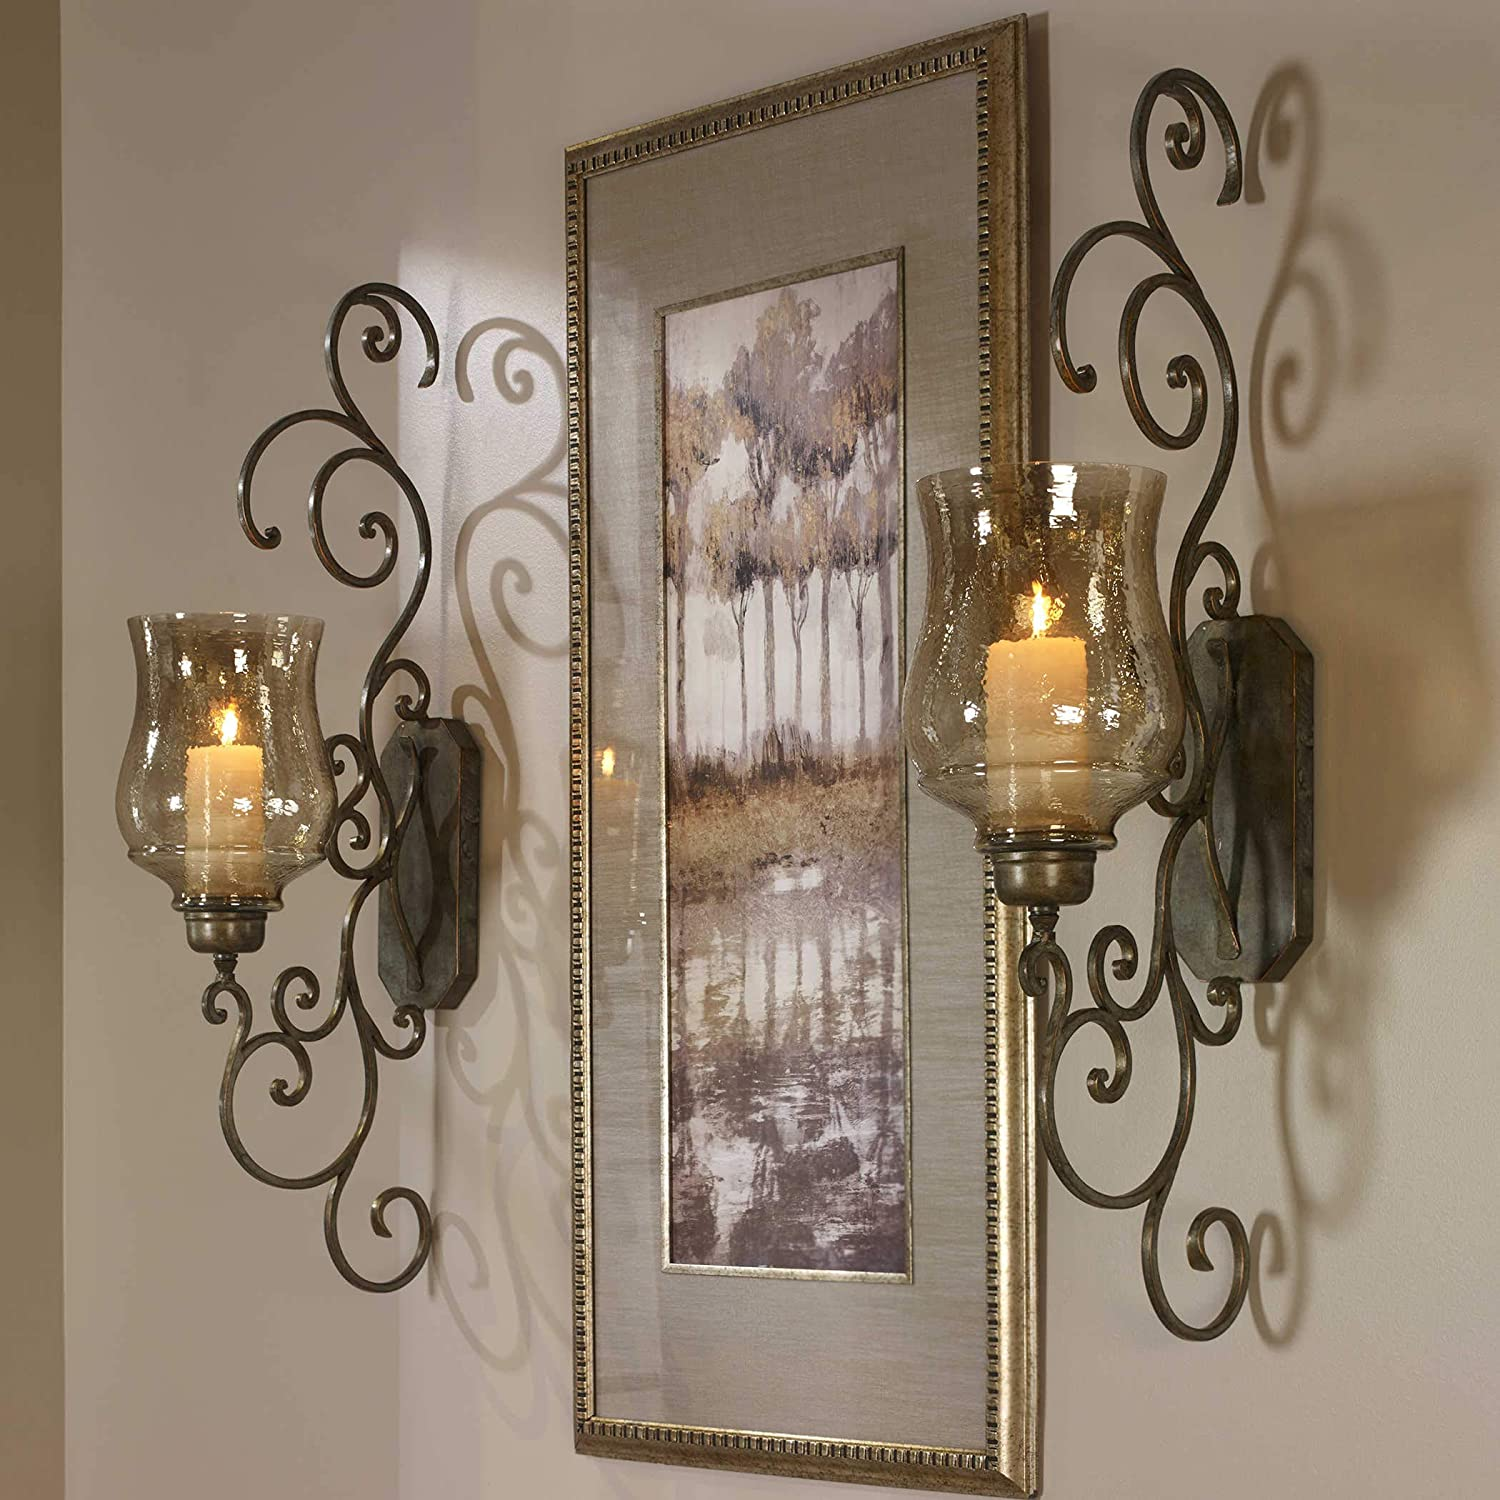 Swirl Design Iron Scrollwork  Candle Sconces Wall Decor Set of 2